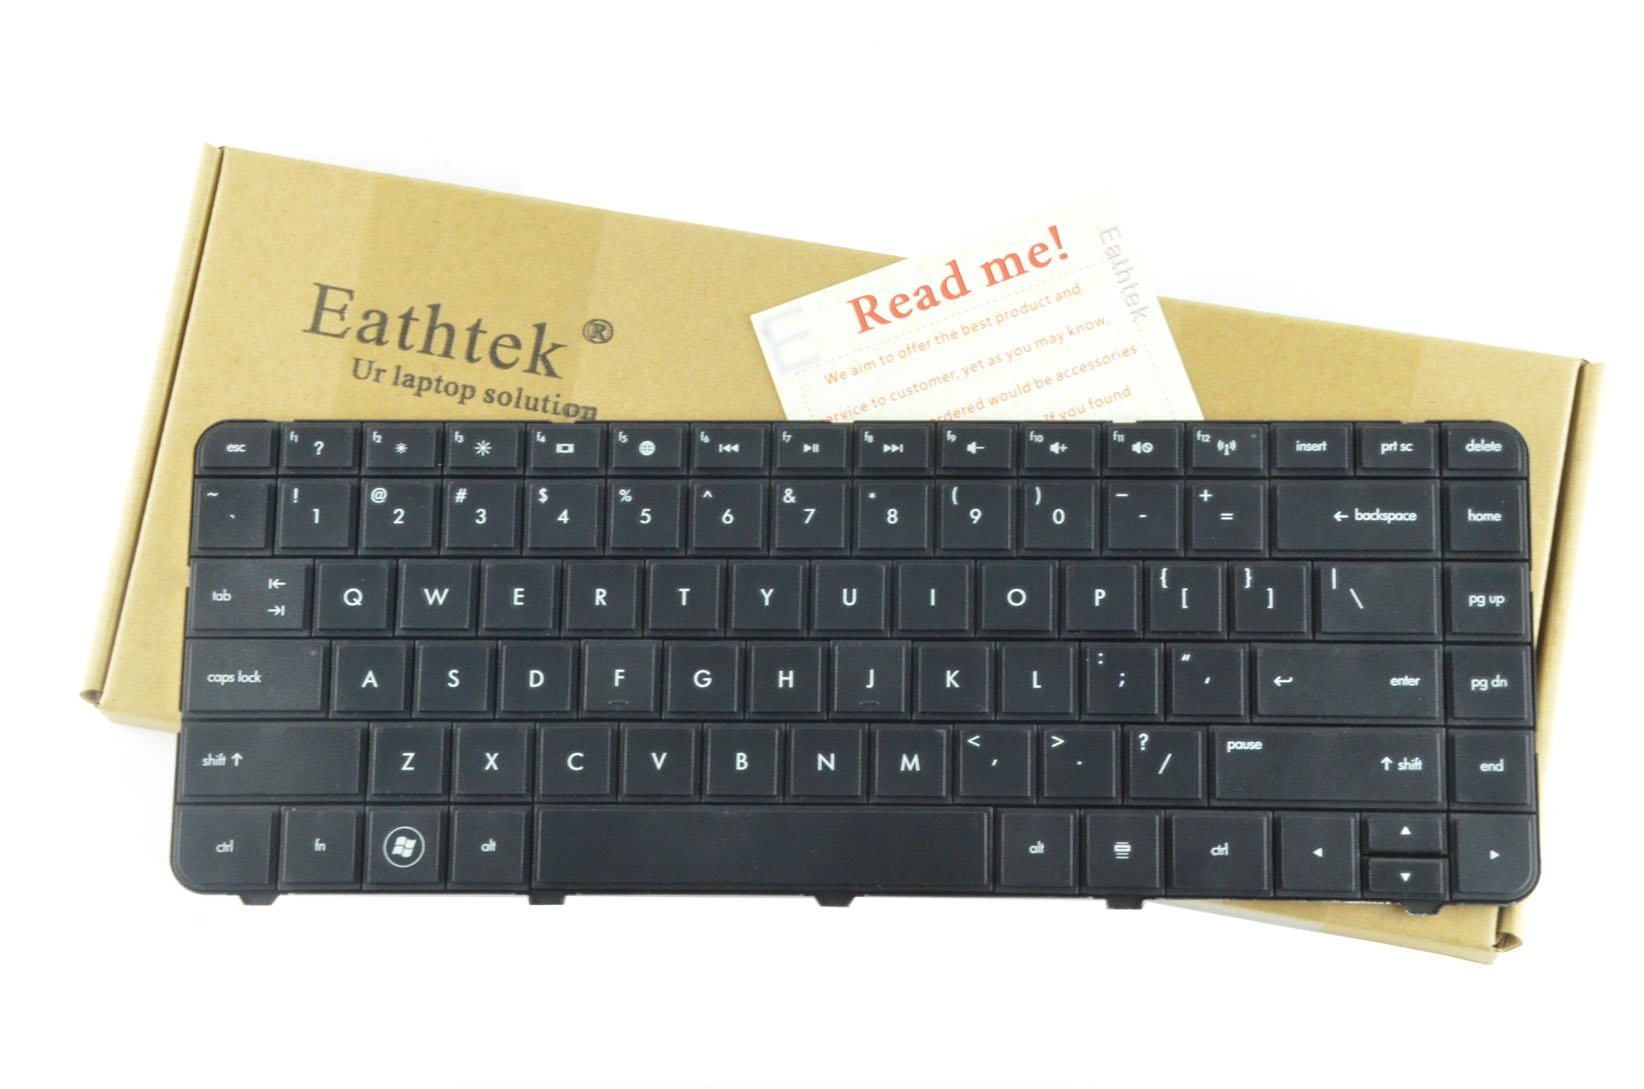 Eathtek Replacement Keyboard for HP Pavilion G4 G6 G4-1000 Series Black US Layout, Compatible with part# 636191-001 640892-001 633183-001